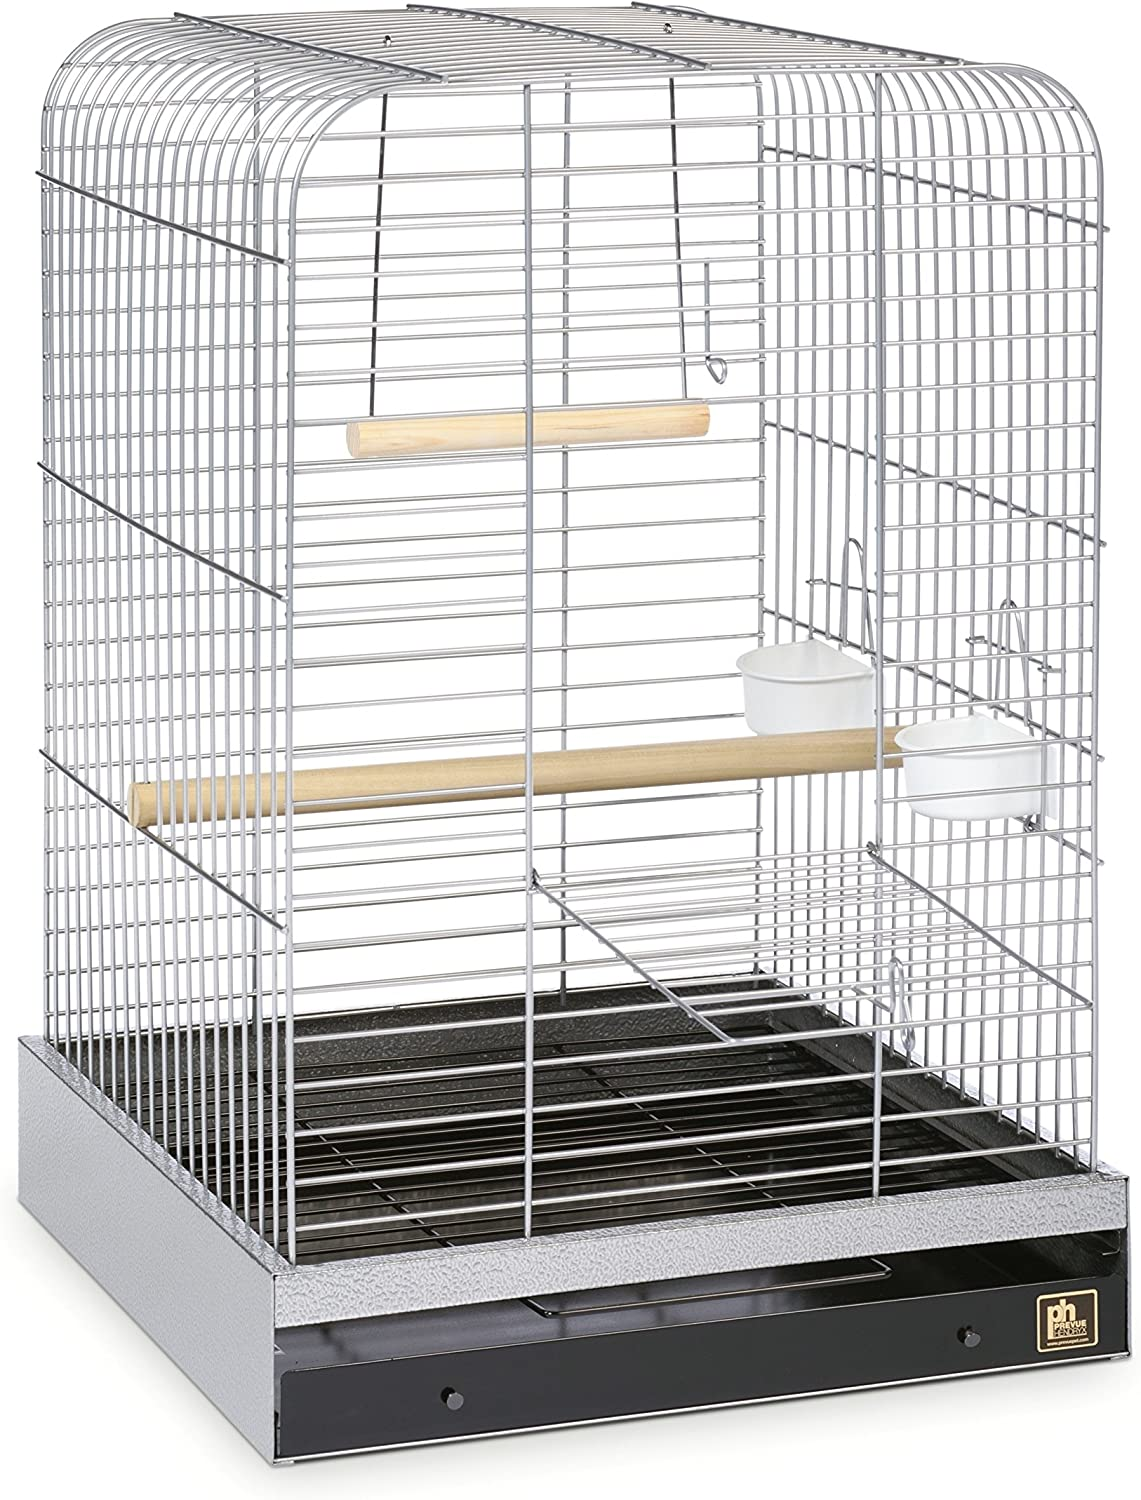 B0002AQ3EK Prevue Pet Products 125C Parrot Cage, Chrome 911S1BZV0ML.SL1500_